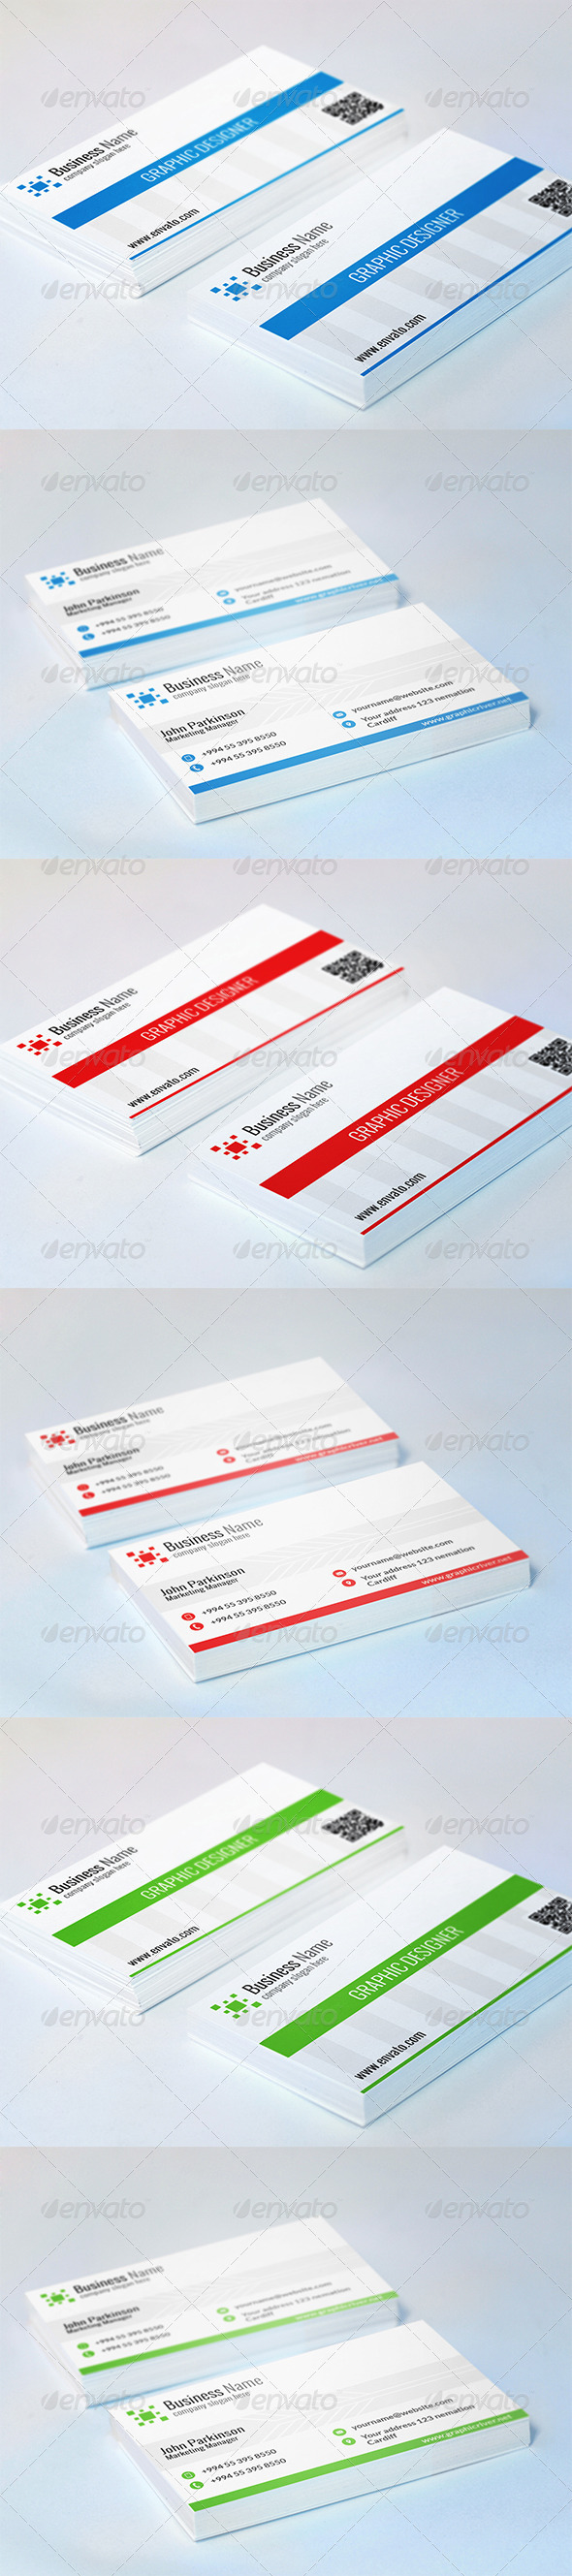 GraphicRiver Corporate Business Card N-003 7031662